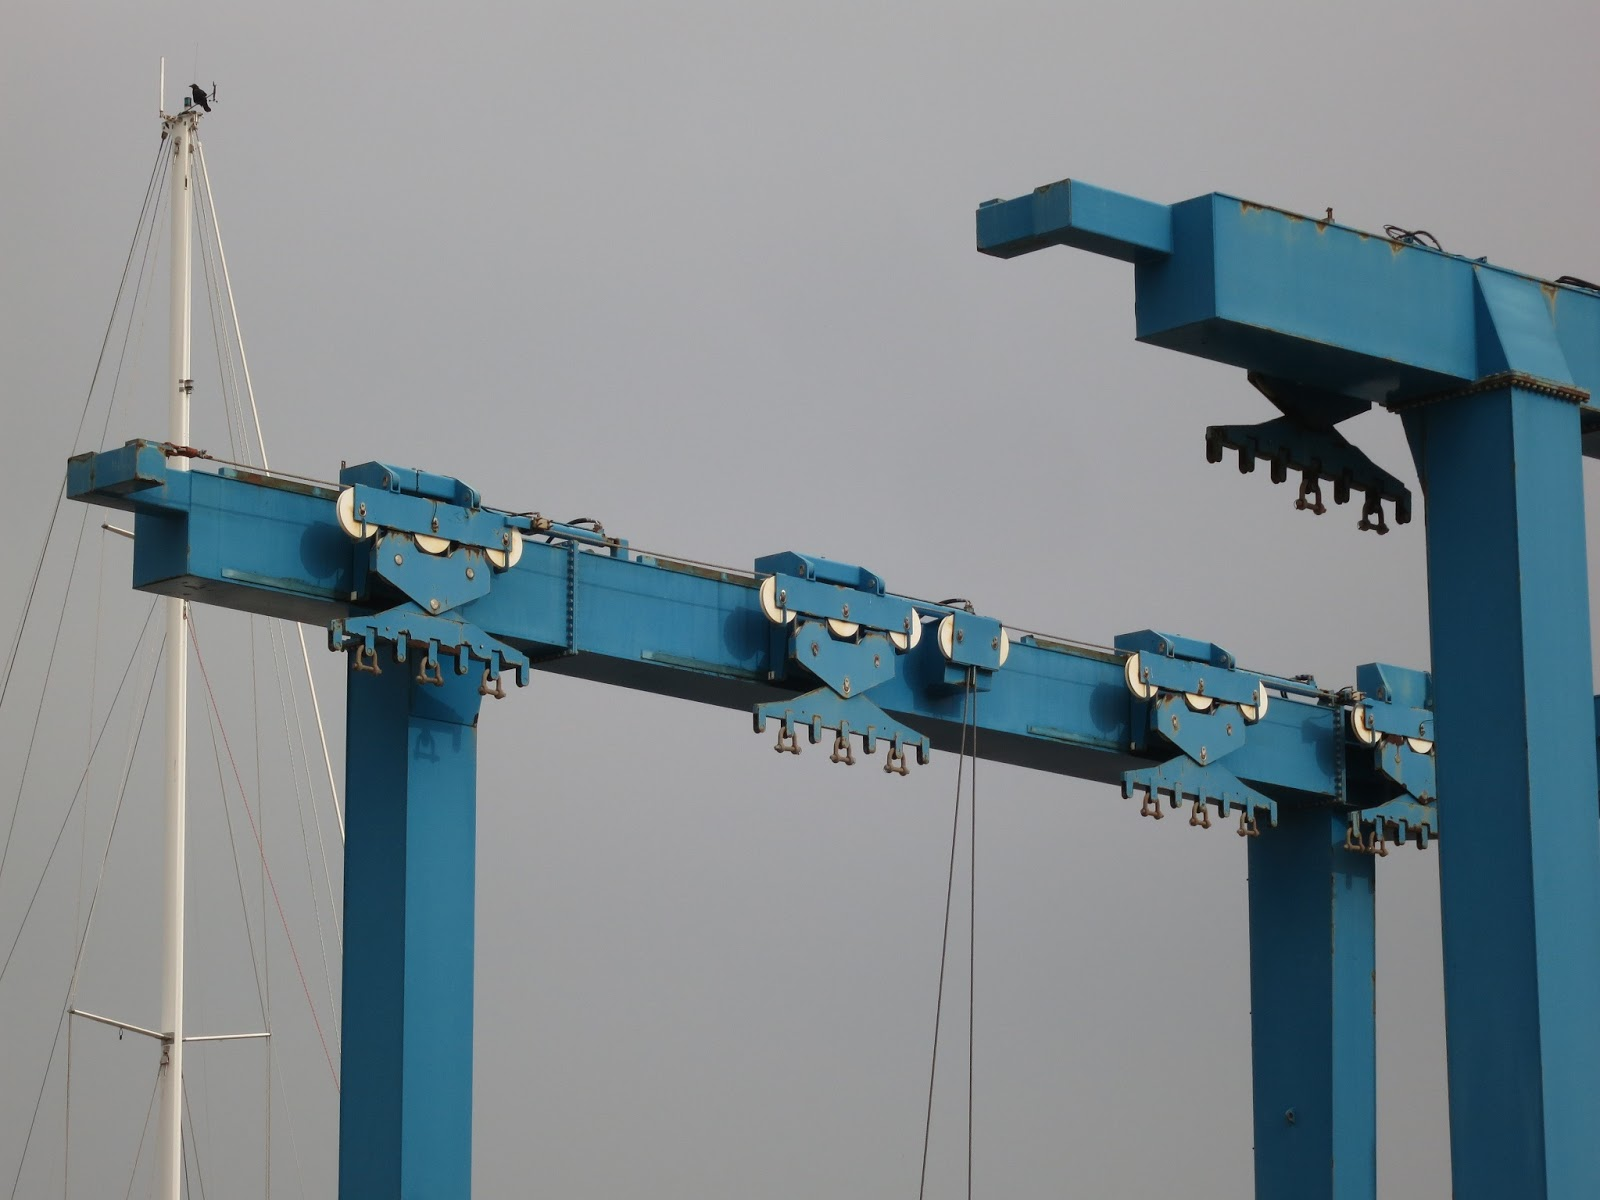 Parallel arms of blue boat crane with whit mast on the left (with bird on)